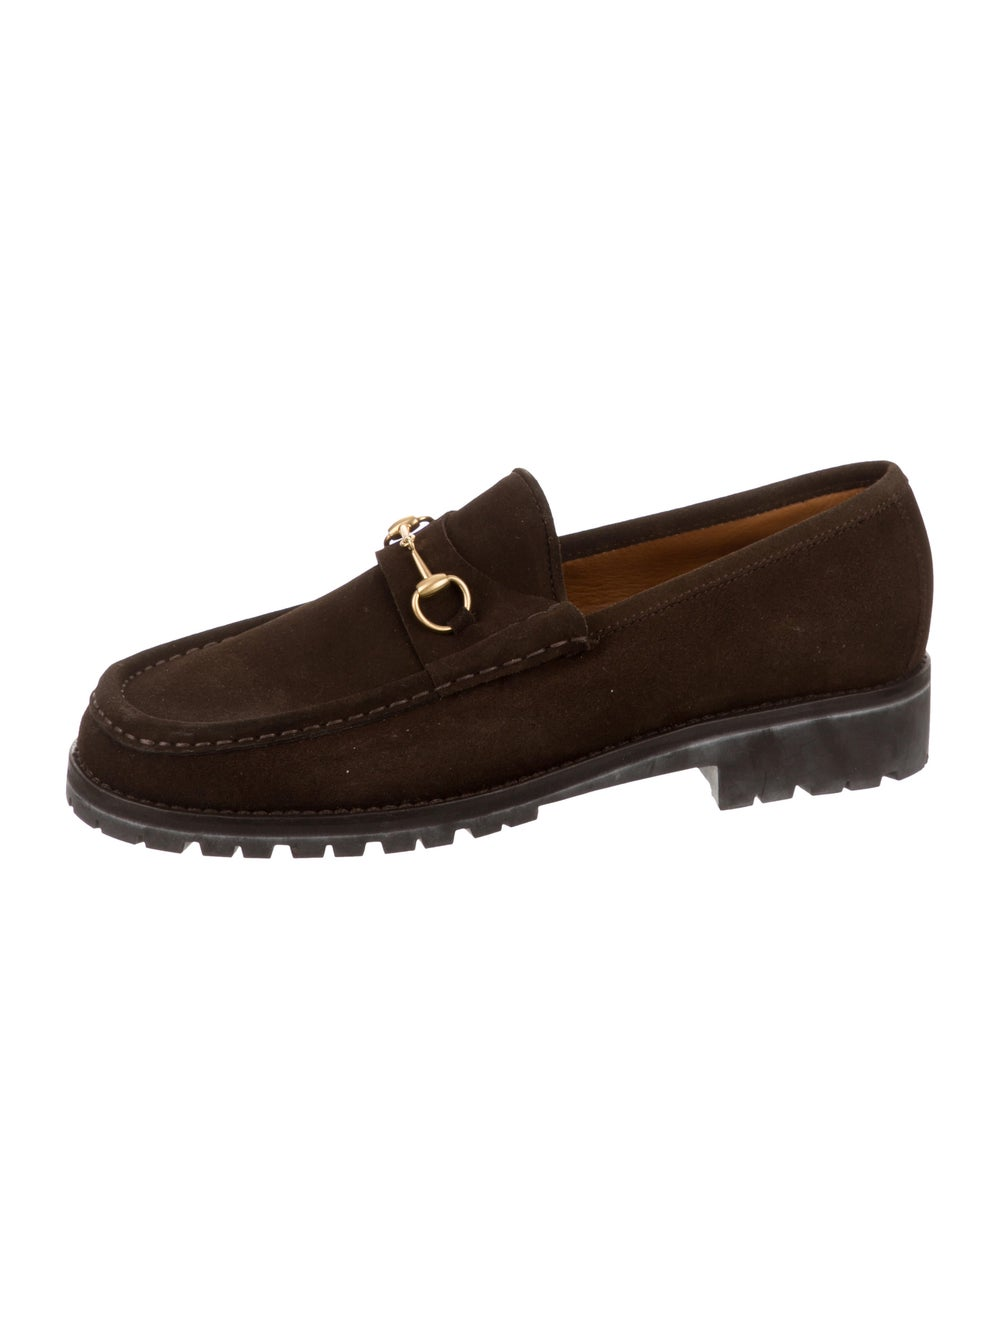 Gucci Suede Horsebit Loafers brass - image 2